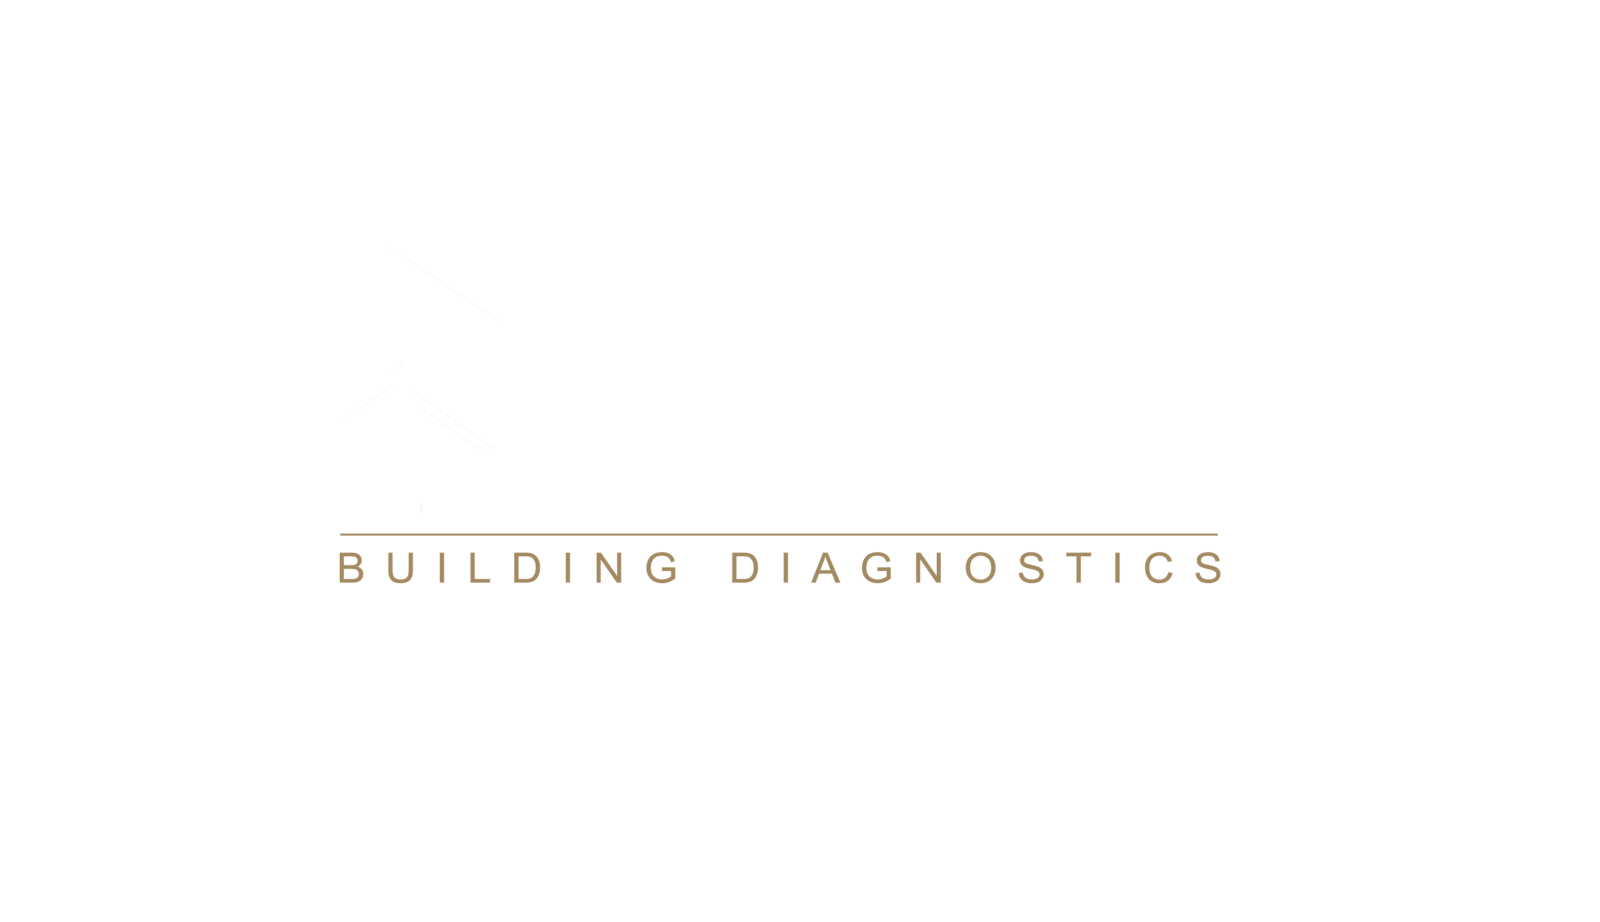 Fryer building Diagnostics